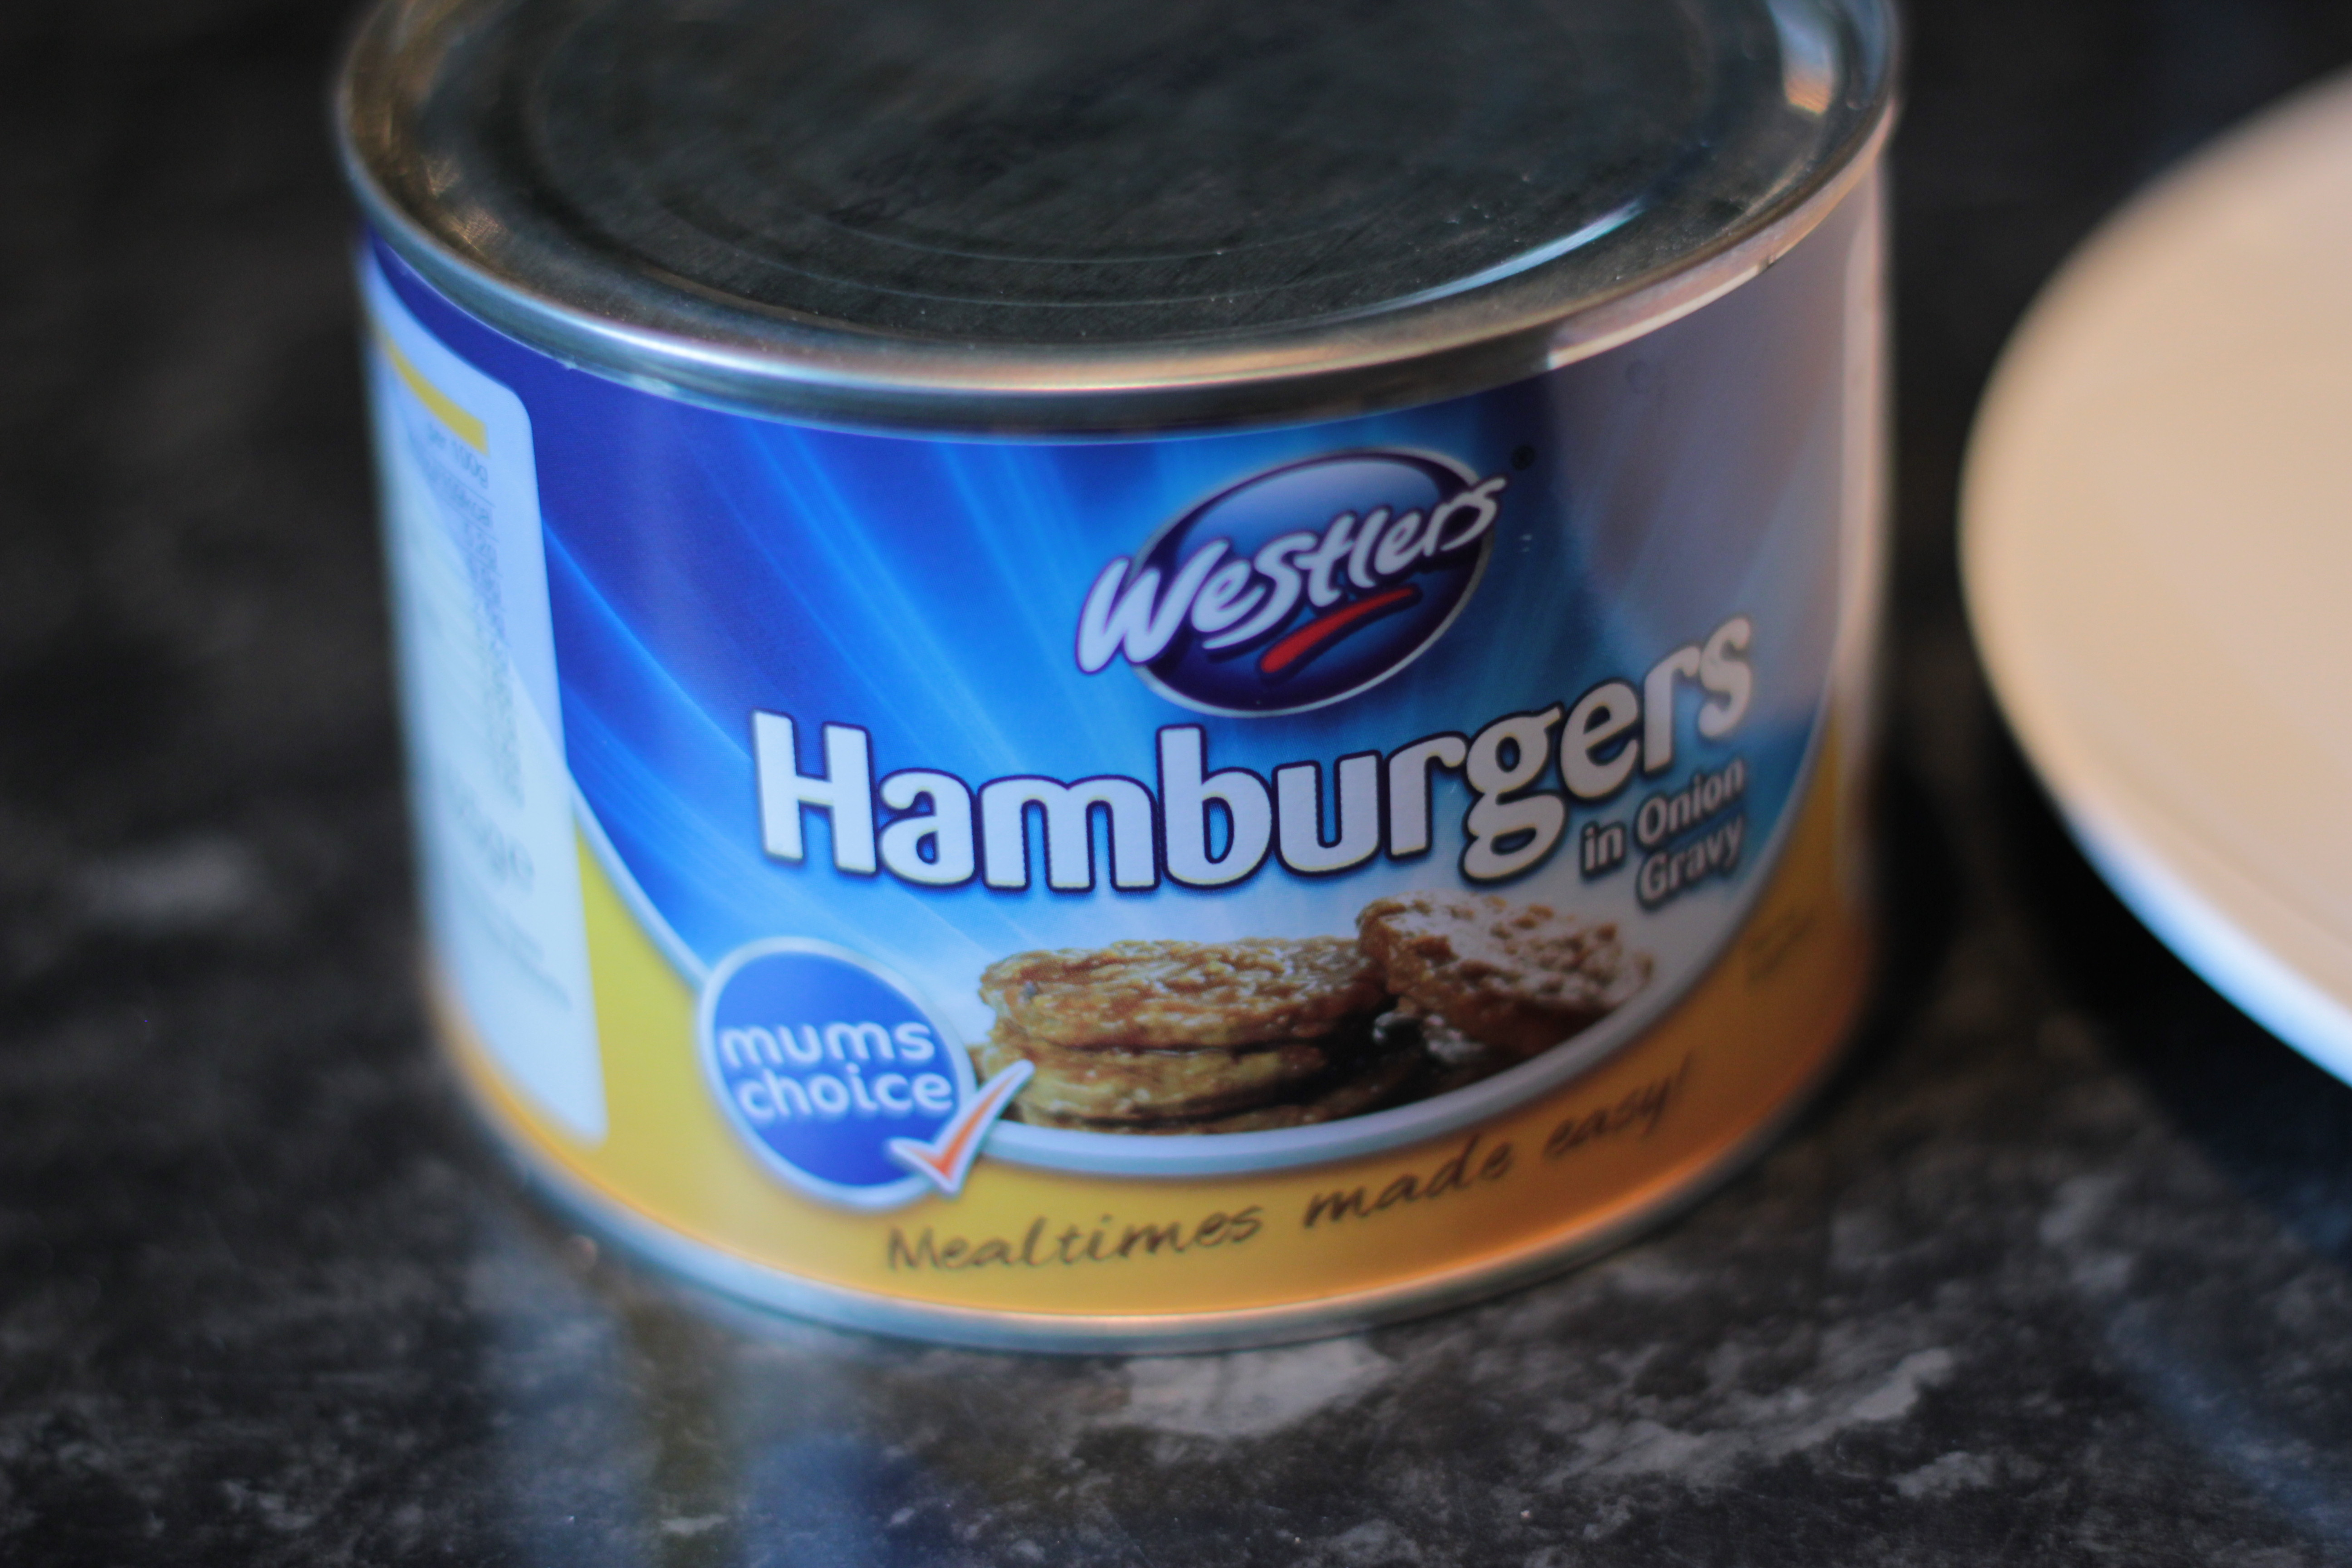 hamburgers in a can quite possibly the worst burgers in the world